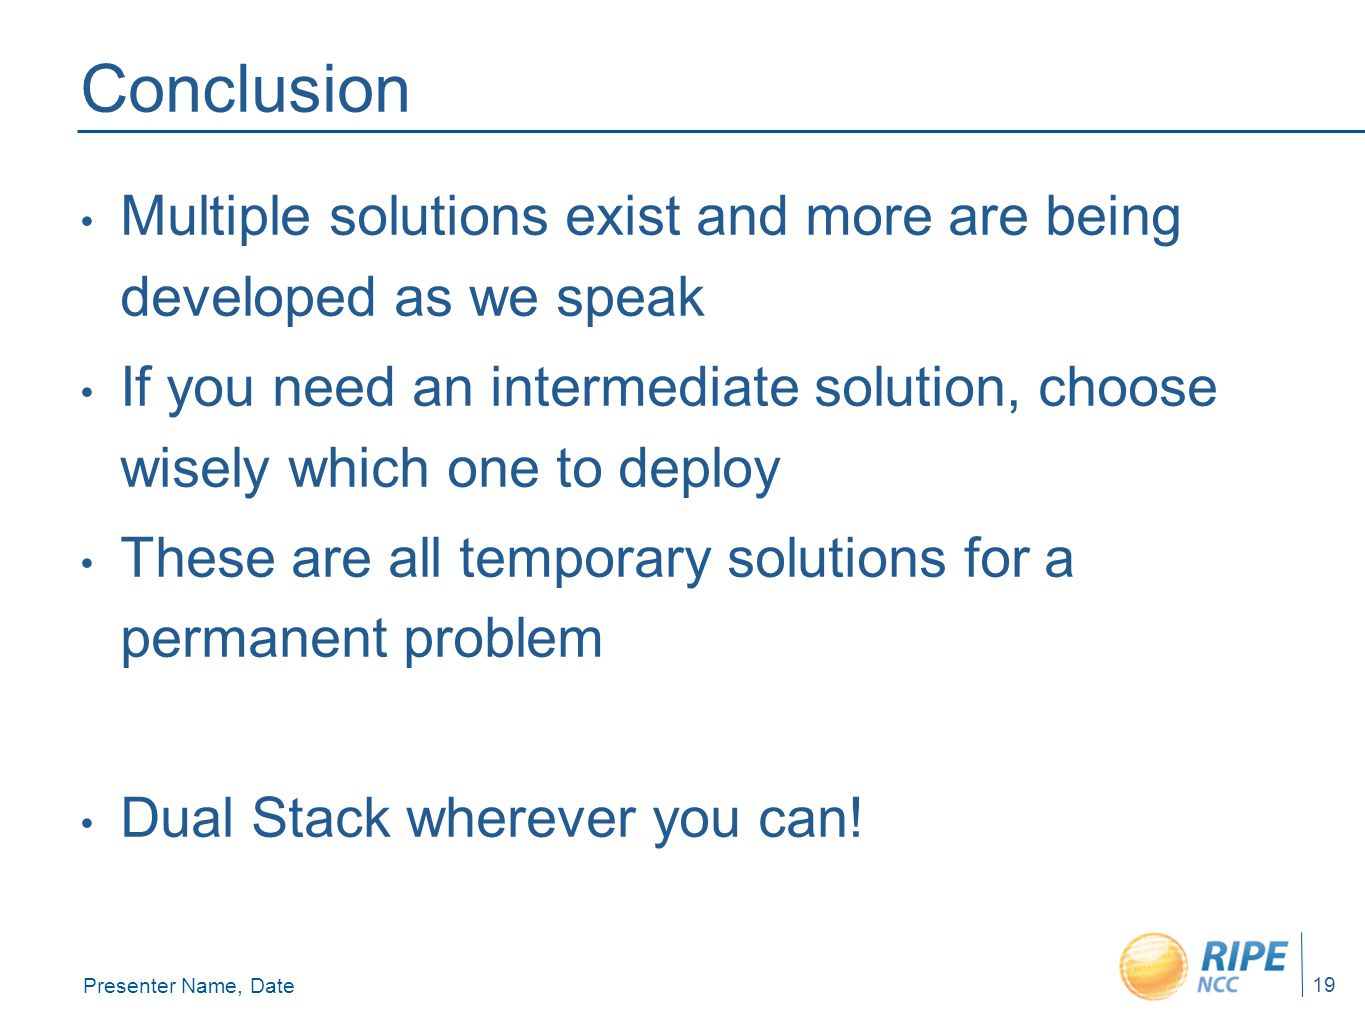 Presenter Name, Date 19 Conclusion Multiple solutions exist and more are being developed as we speak If you need an intermediate solution, choose wisely which one to deploy These are all temporary solutions for a permanent problem Dual Stack wherever you can!